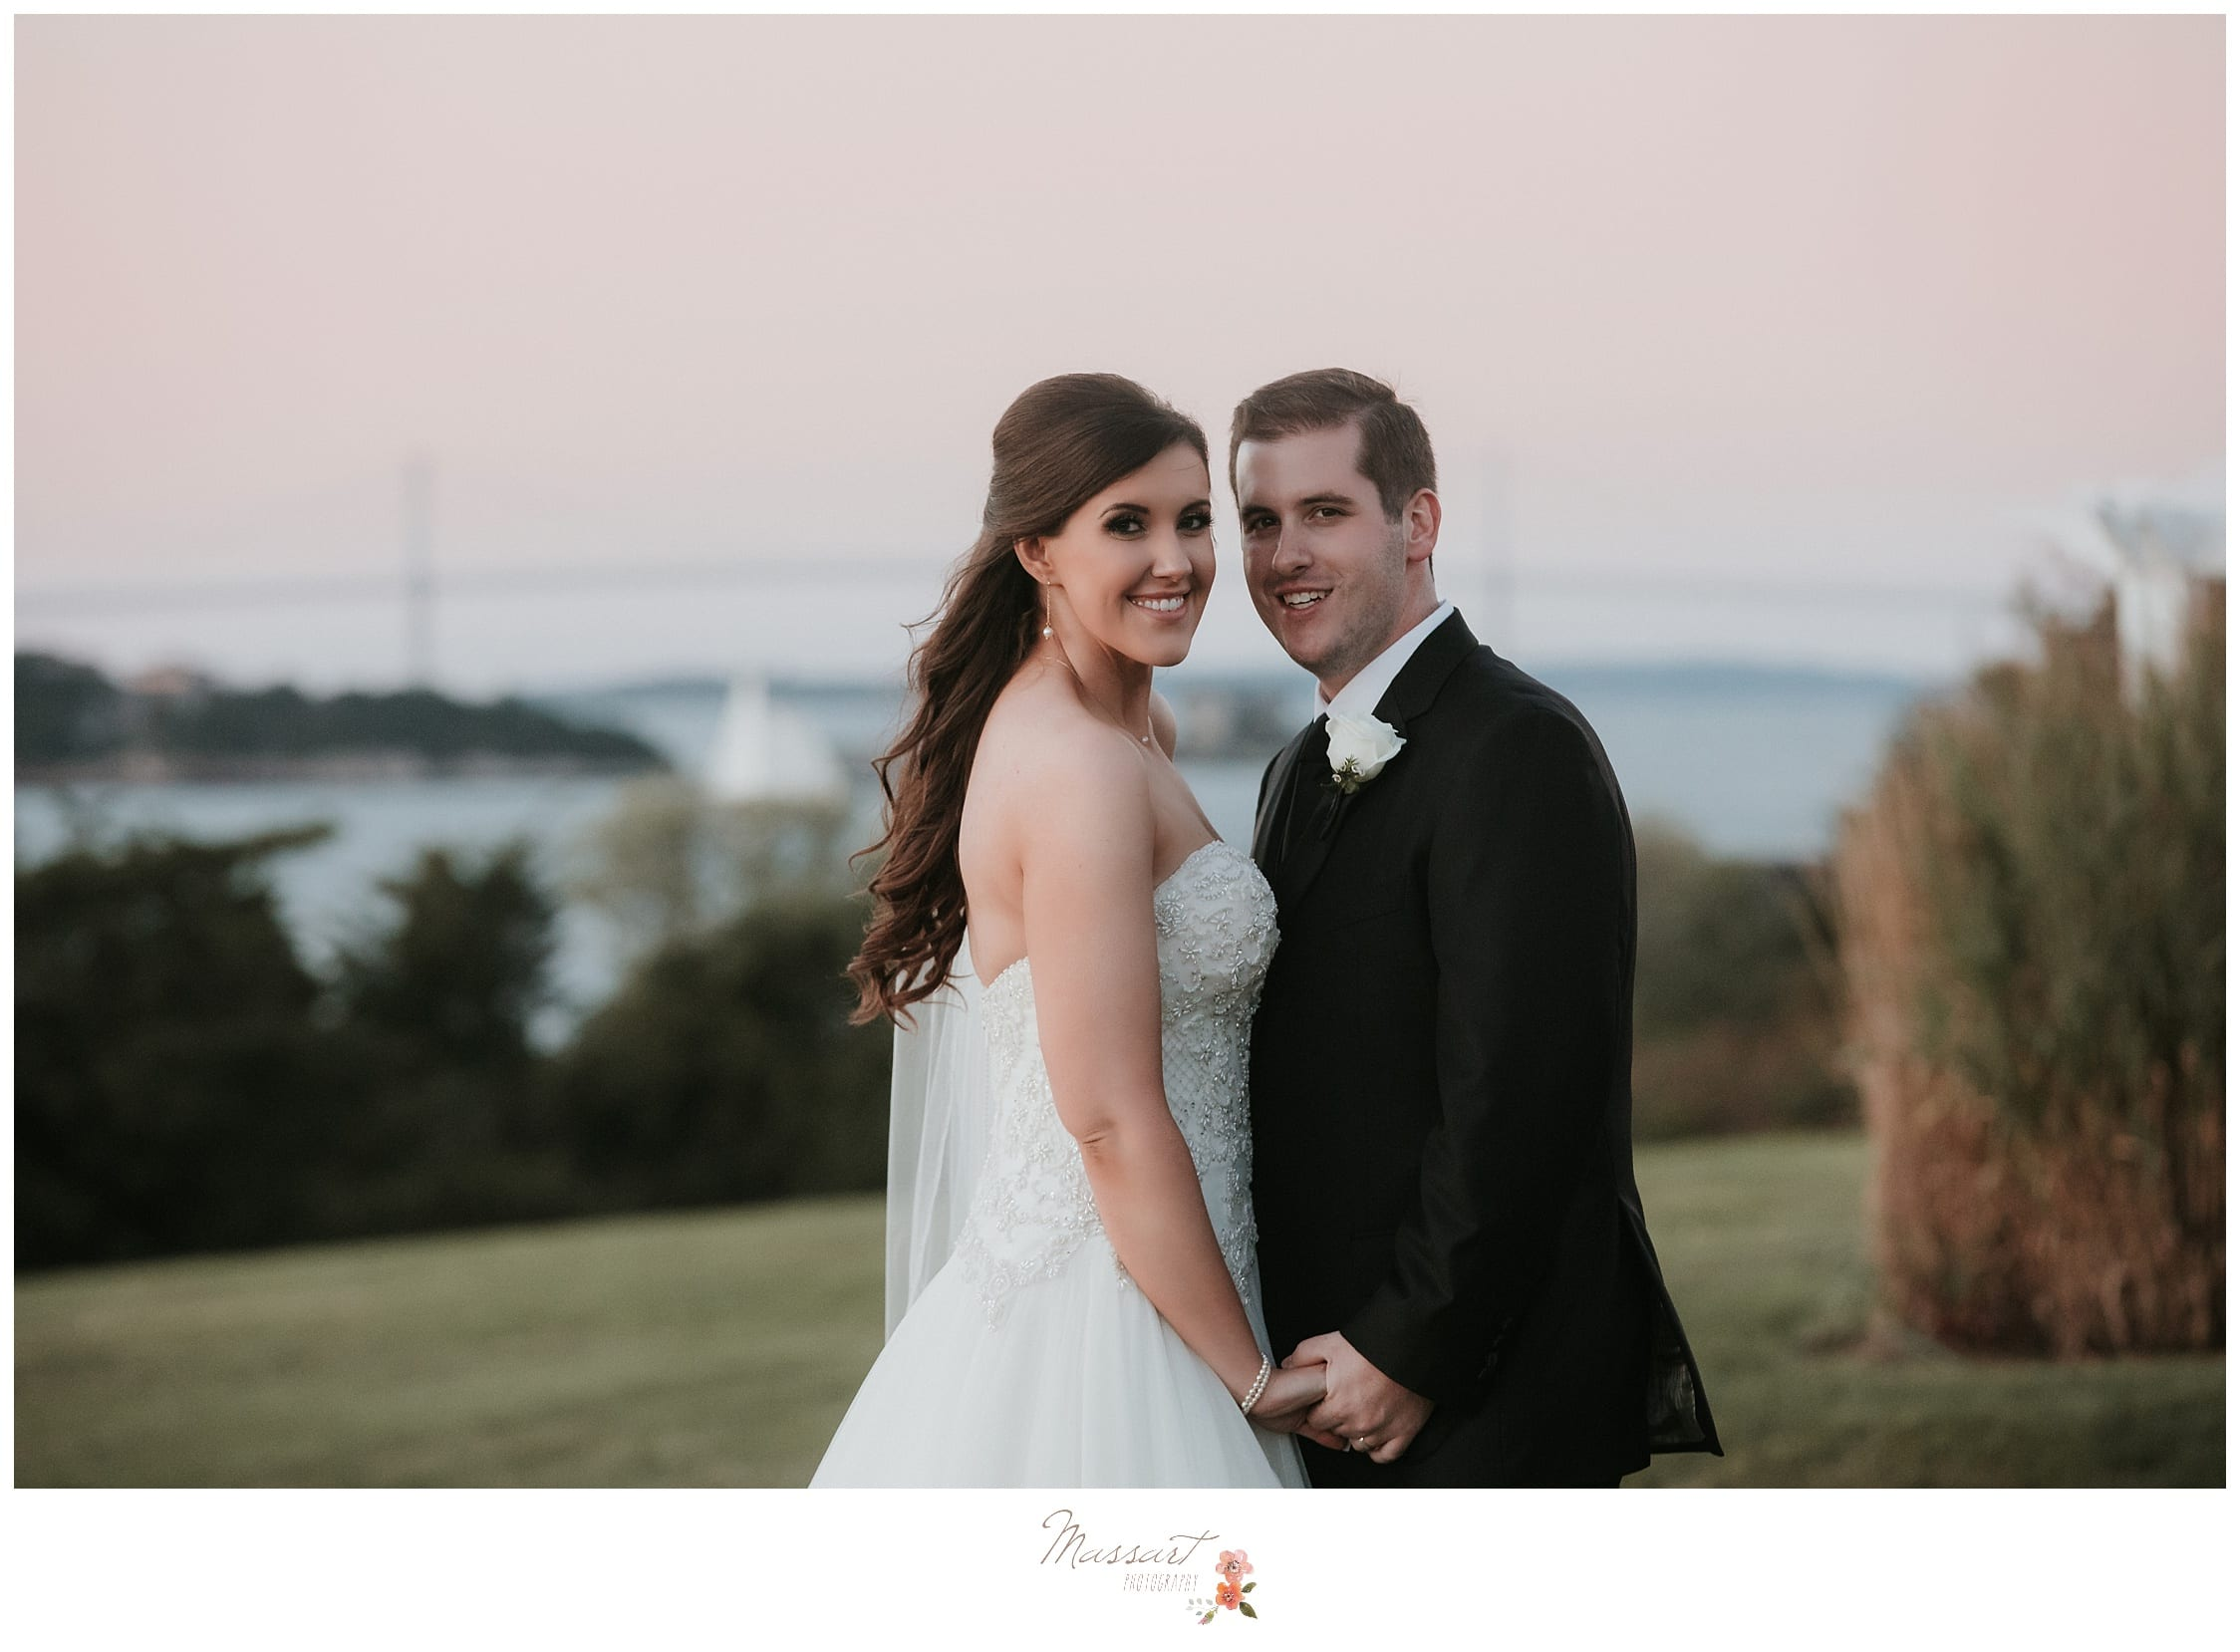 Newlyweds take their formal portraits at the Ocean Cliff wedding photographed by Massart Photography RI